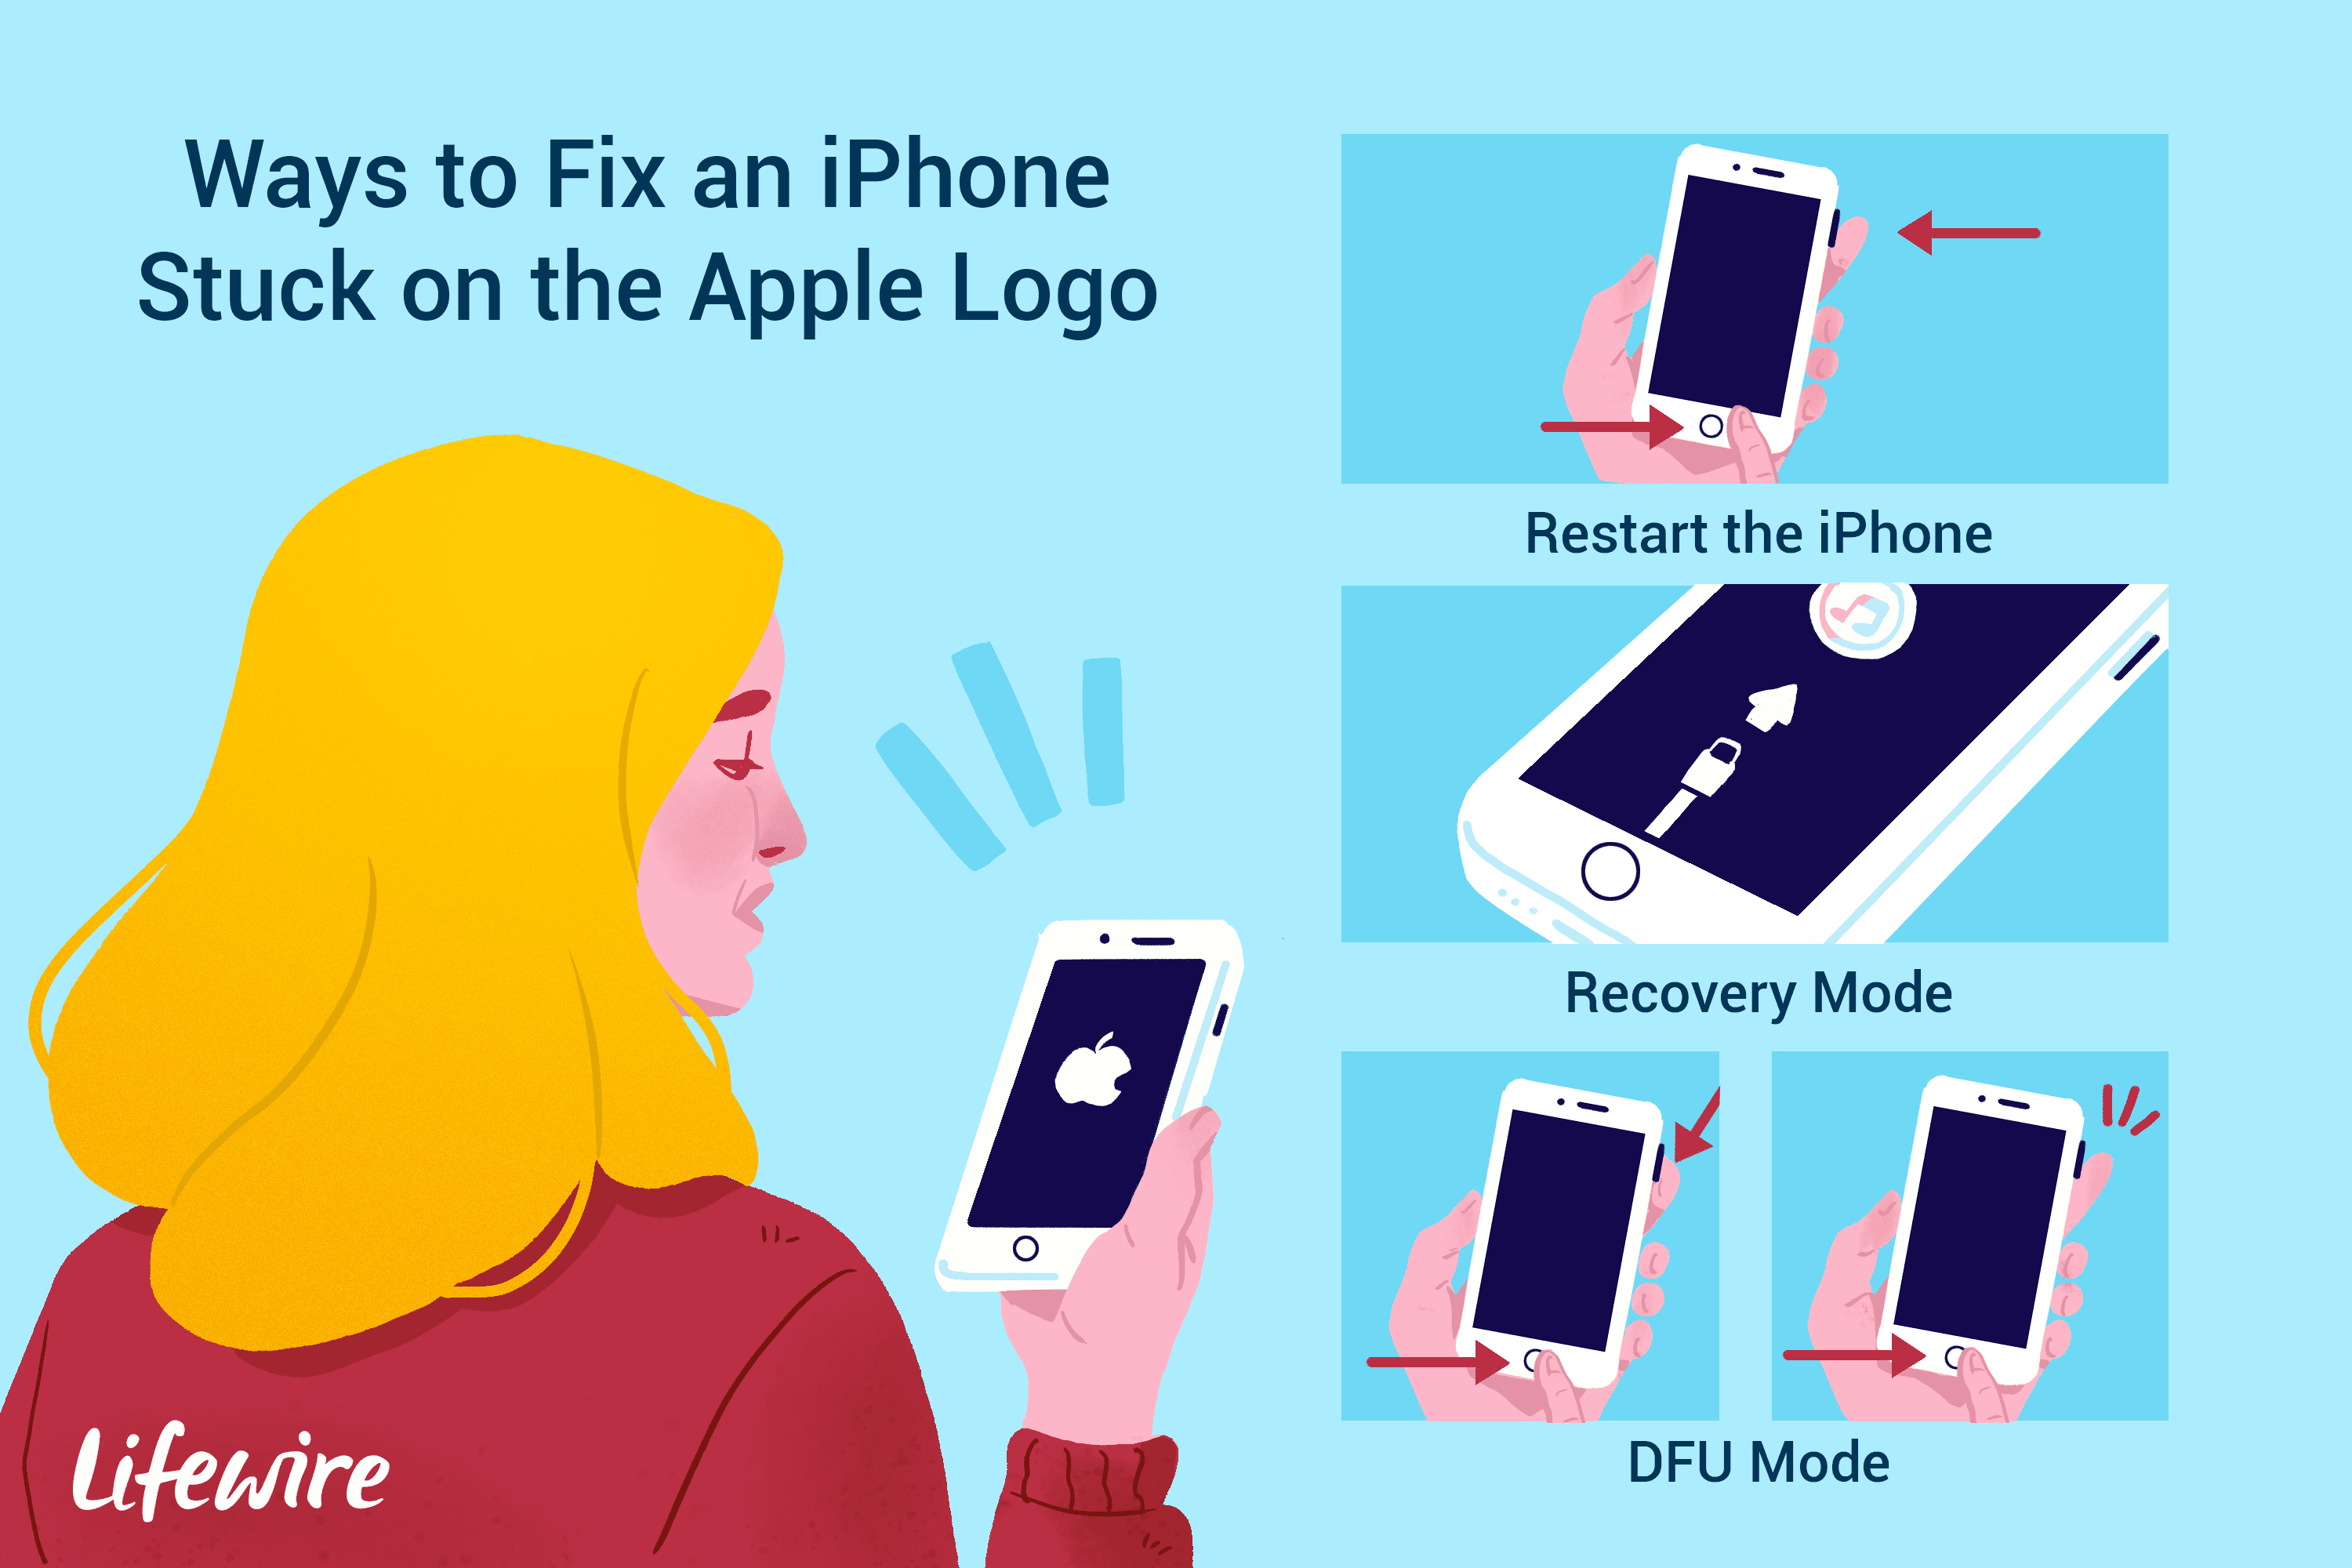 How to Fix an iPhone Stuck on the Apple Logo.